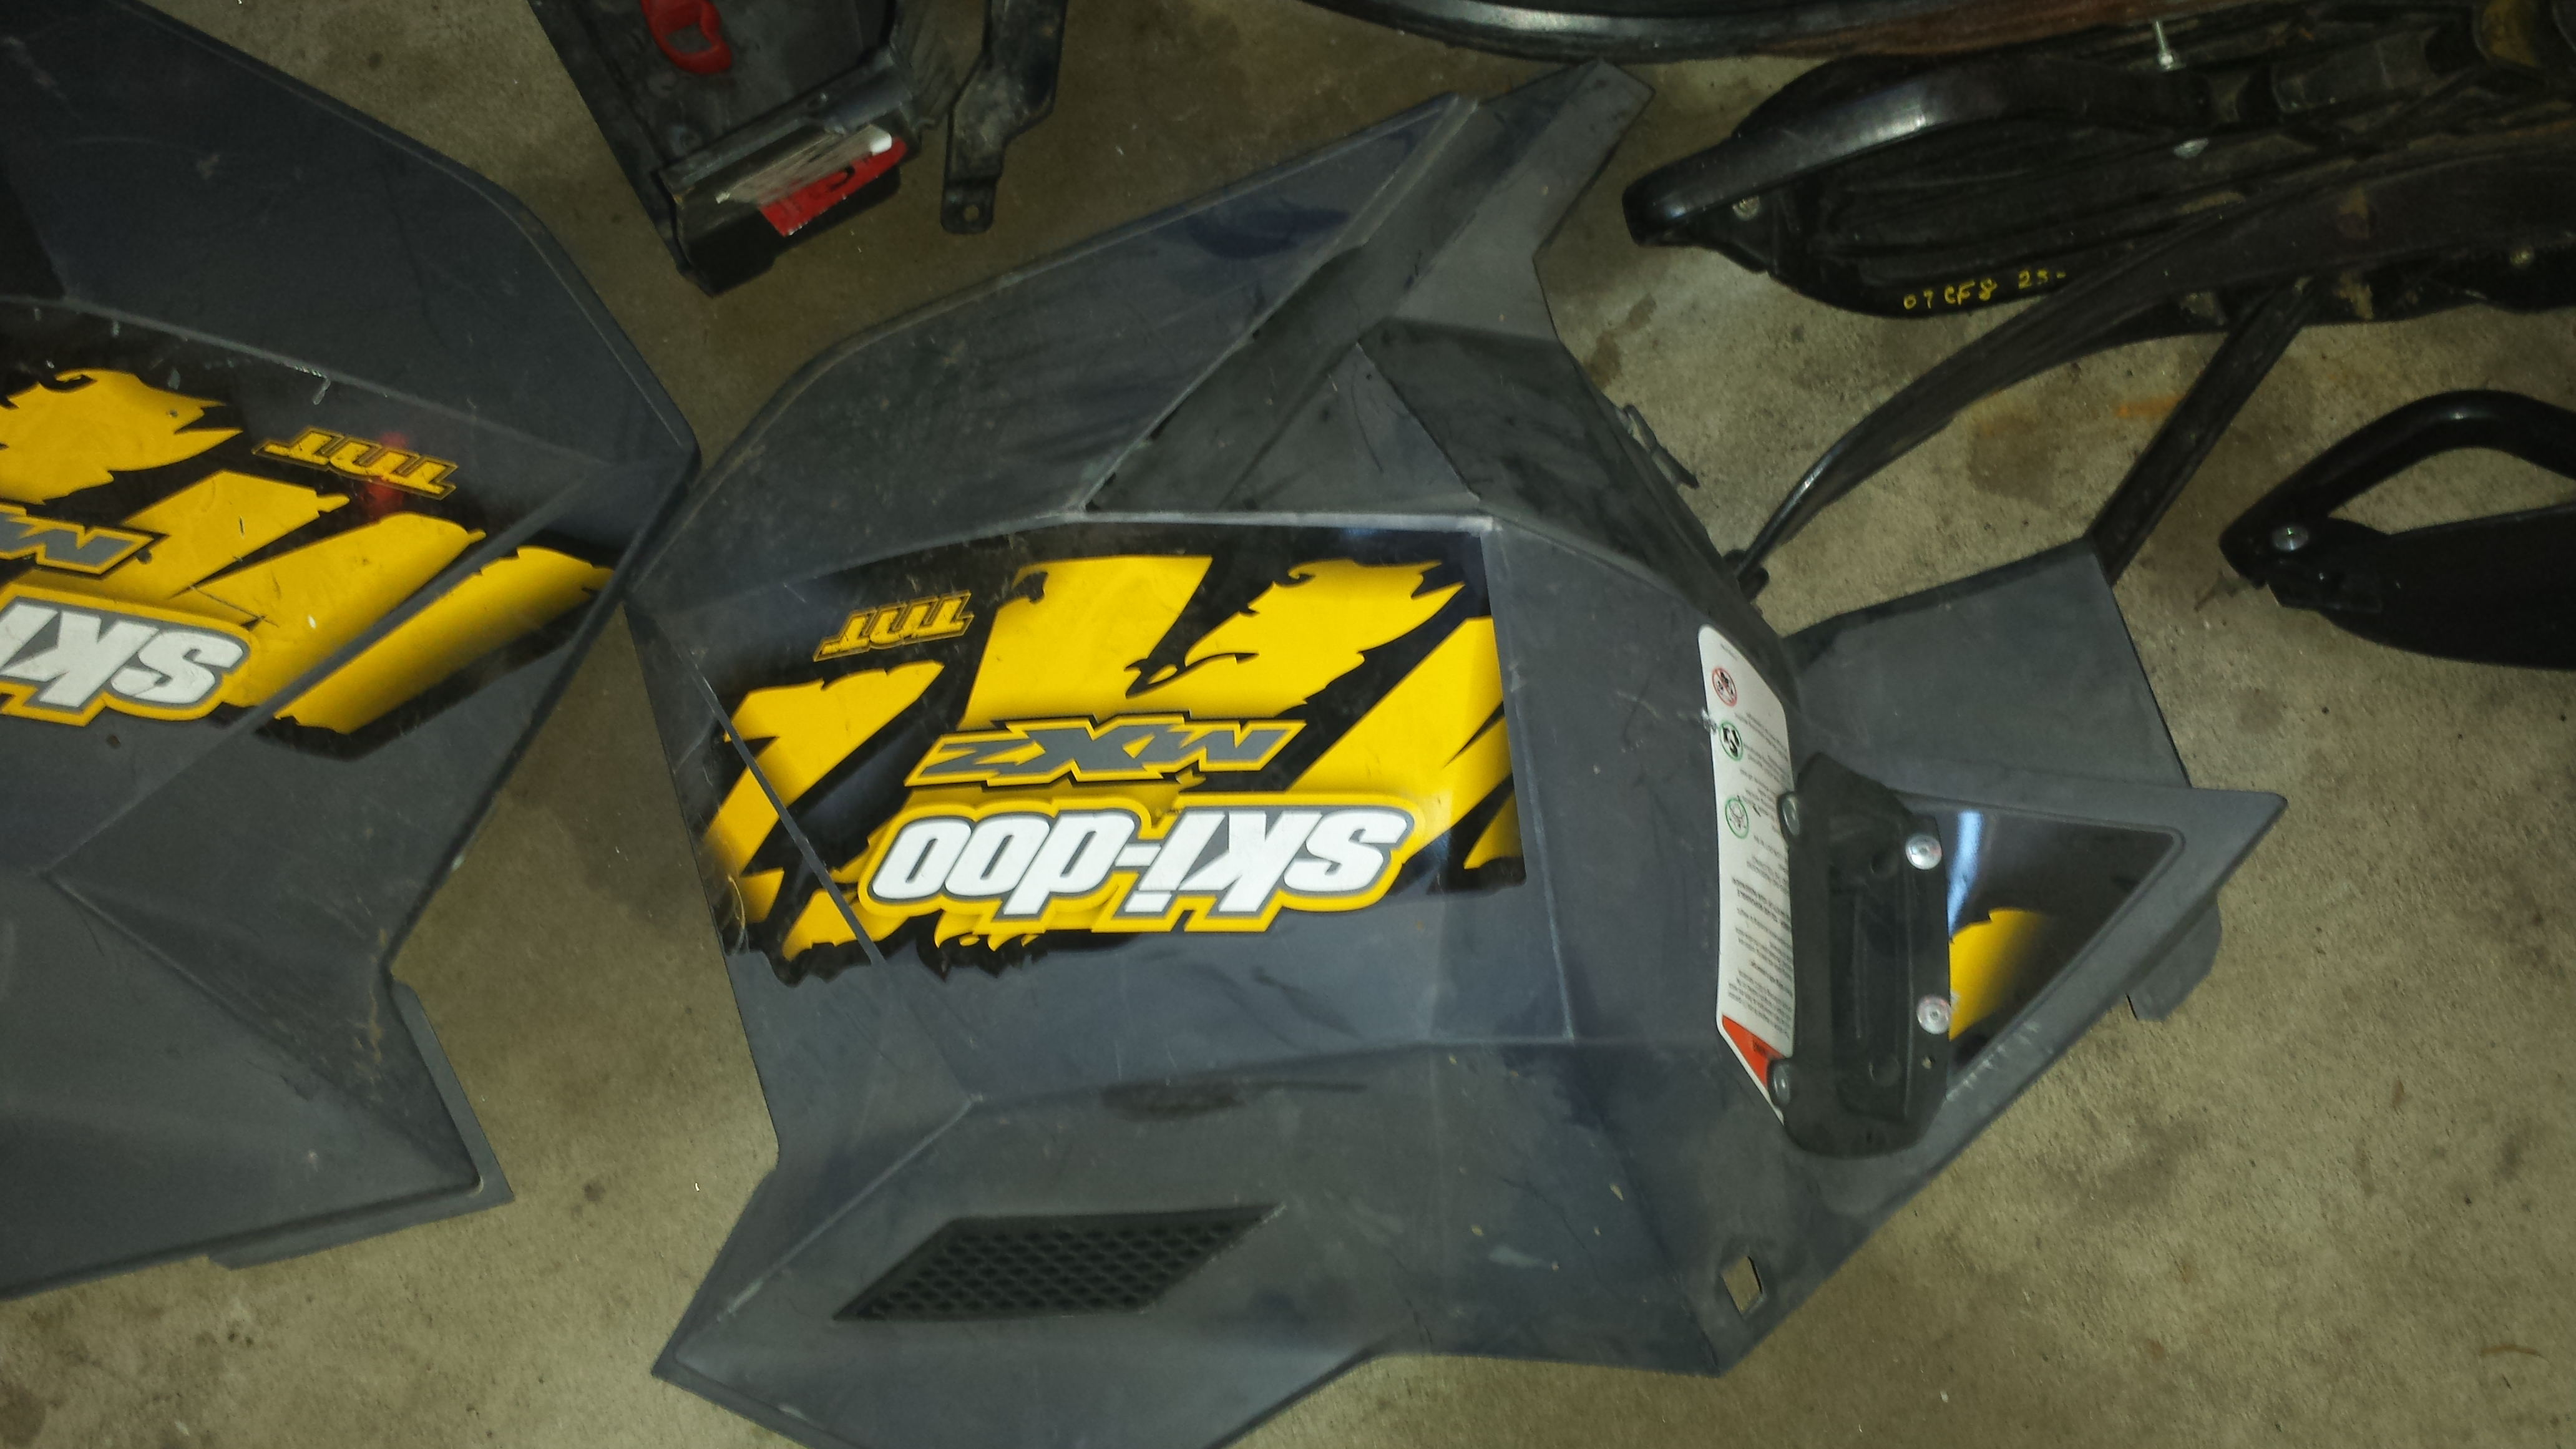 Parts available from 2008 Ski Doo XP Renegade X 800